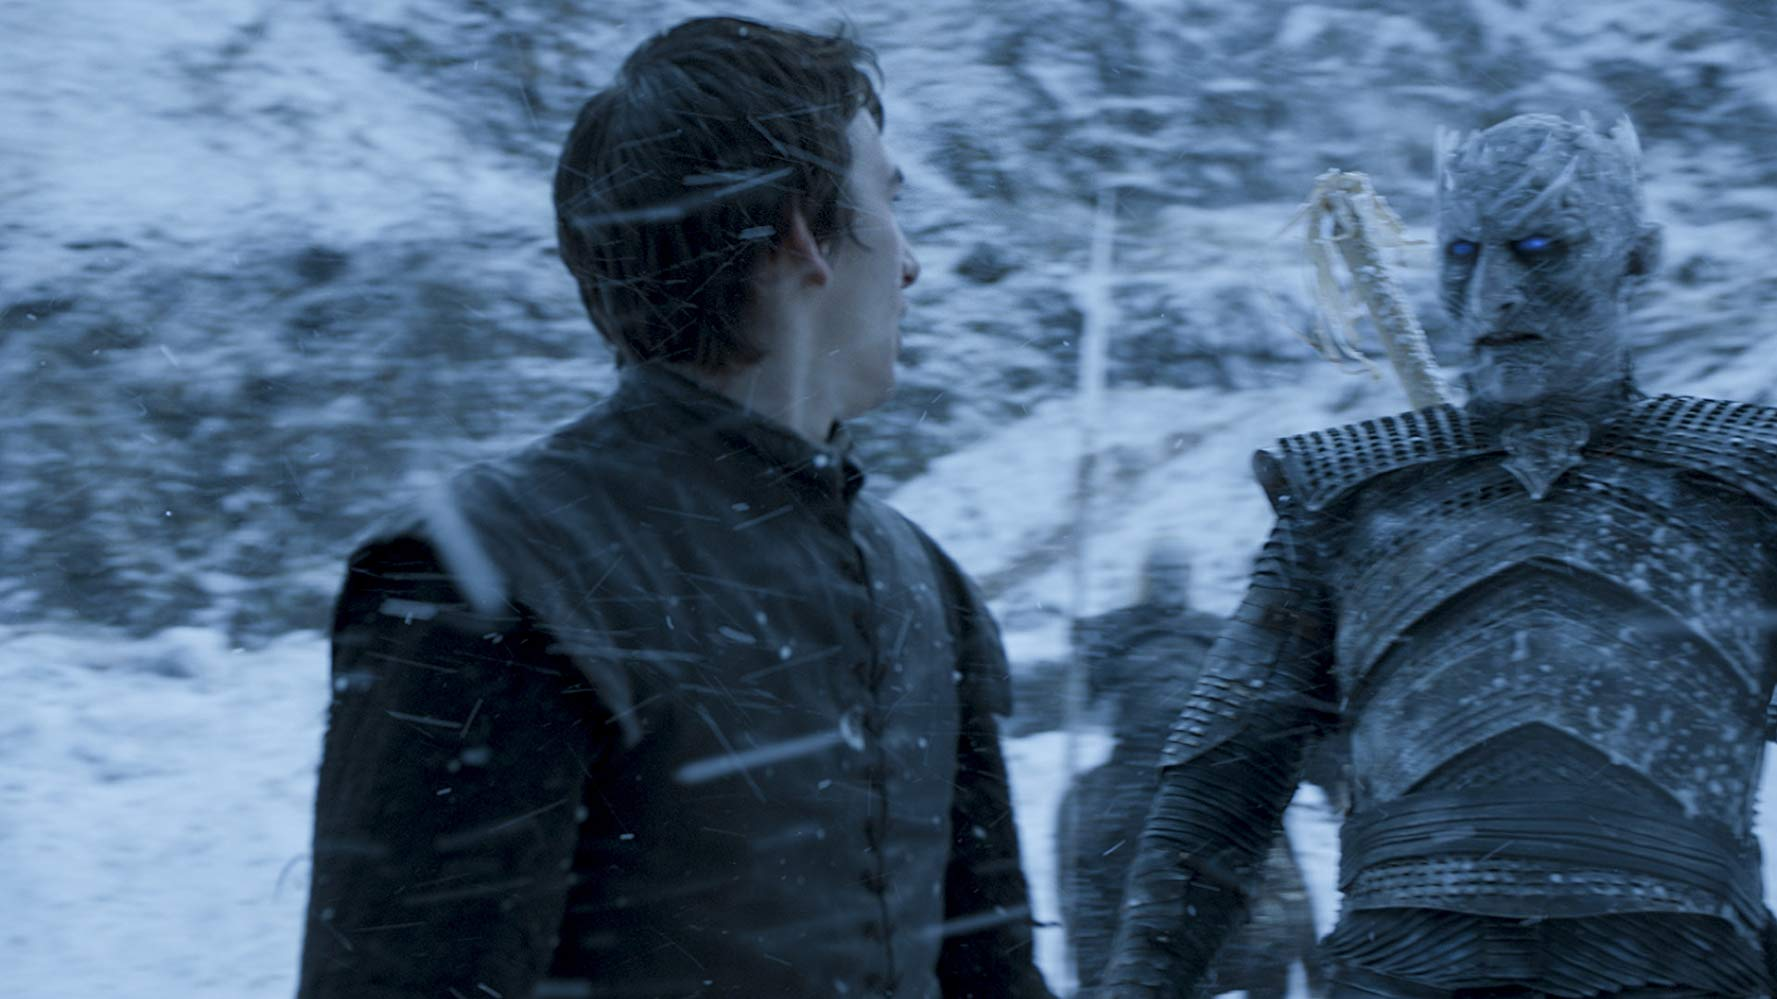 Isaac Hempstead Wright (Bran Stark) and Vladimir 'Furdo' Furdik (Night King) in Game of Thrones (2011). (Source: IMDB)